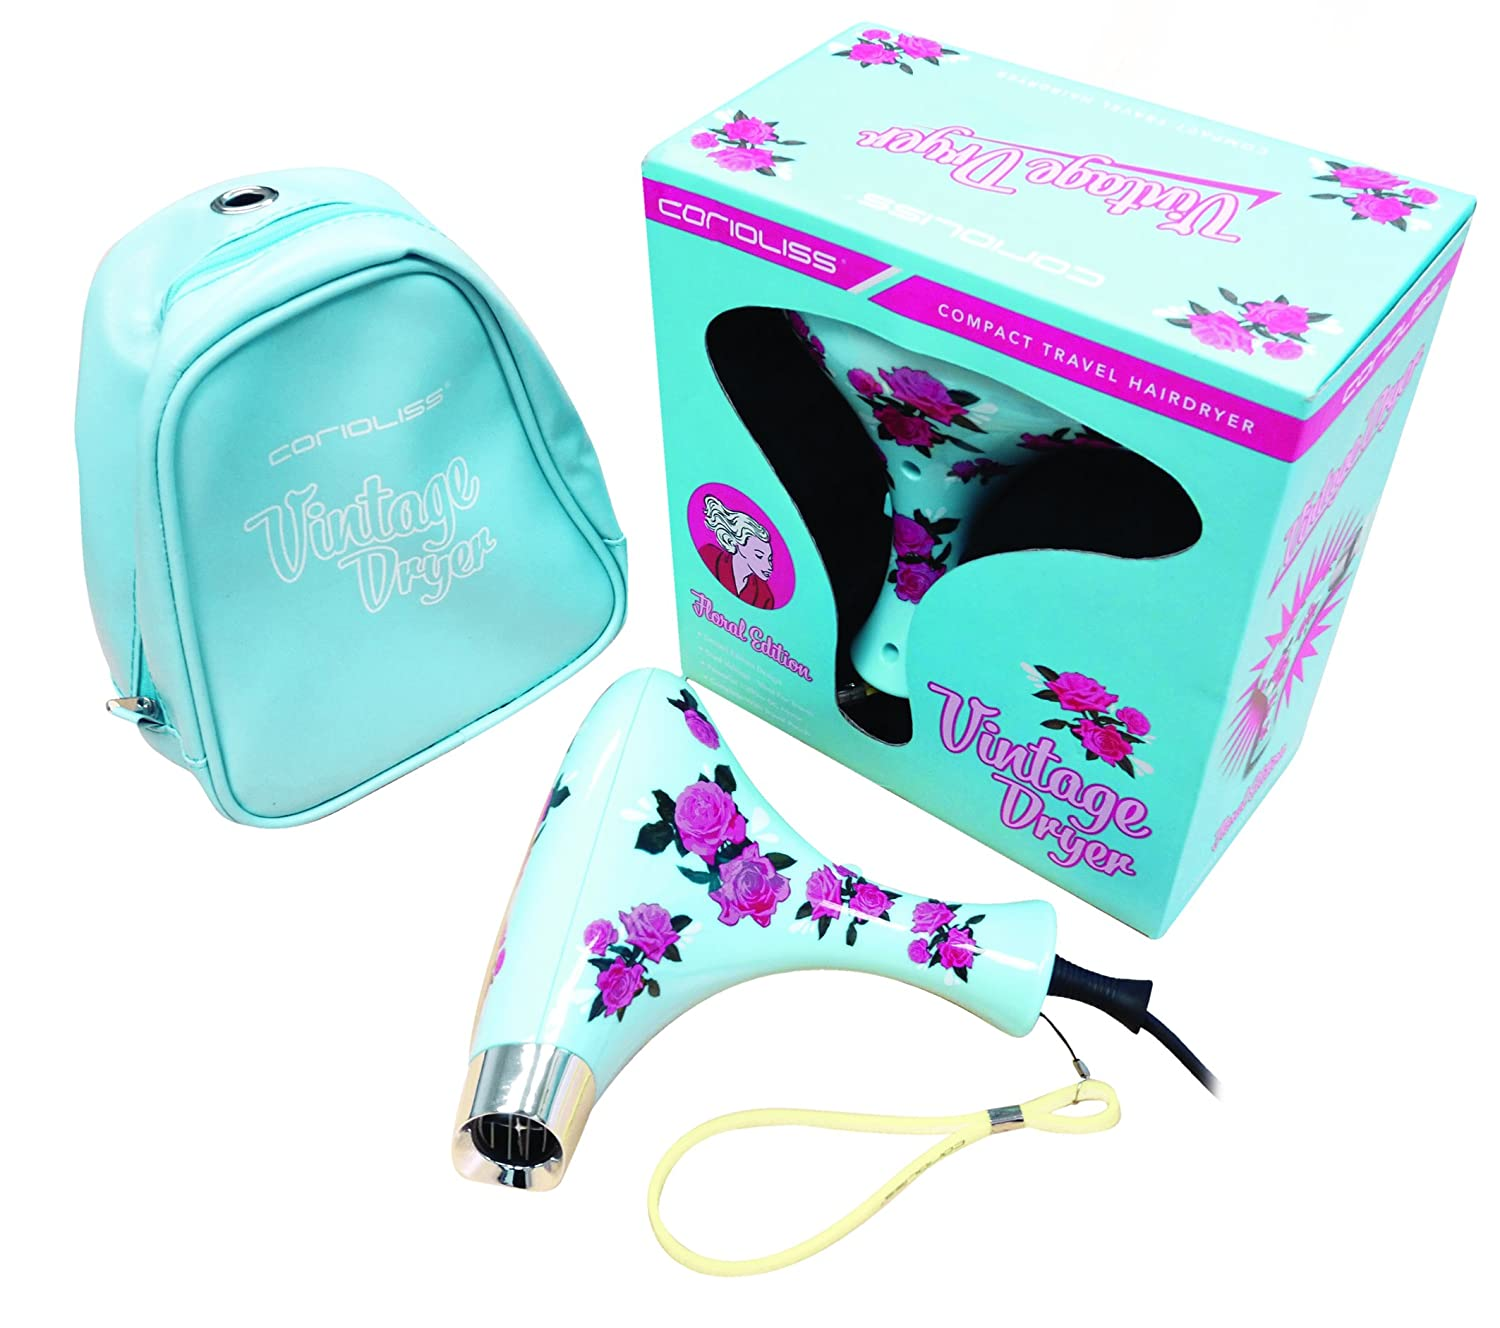 corioliss Mini Vintage Dryer Compact Travel Hairdryer Blue Floral Design by corioliss: Amazon.es: Salud y cuidado personal